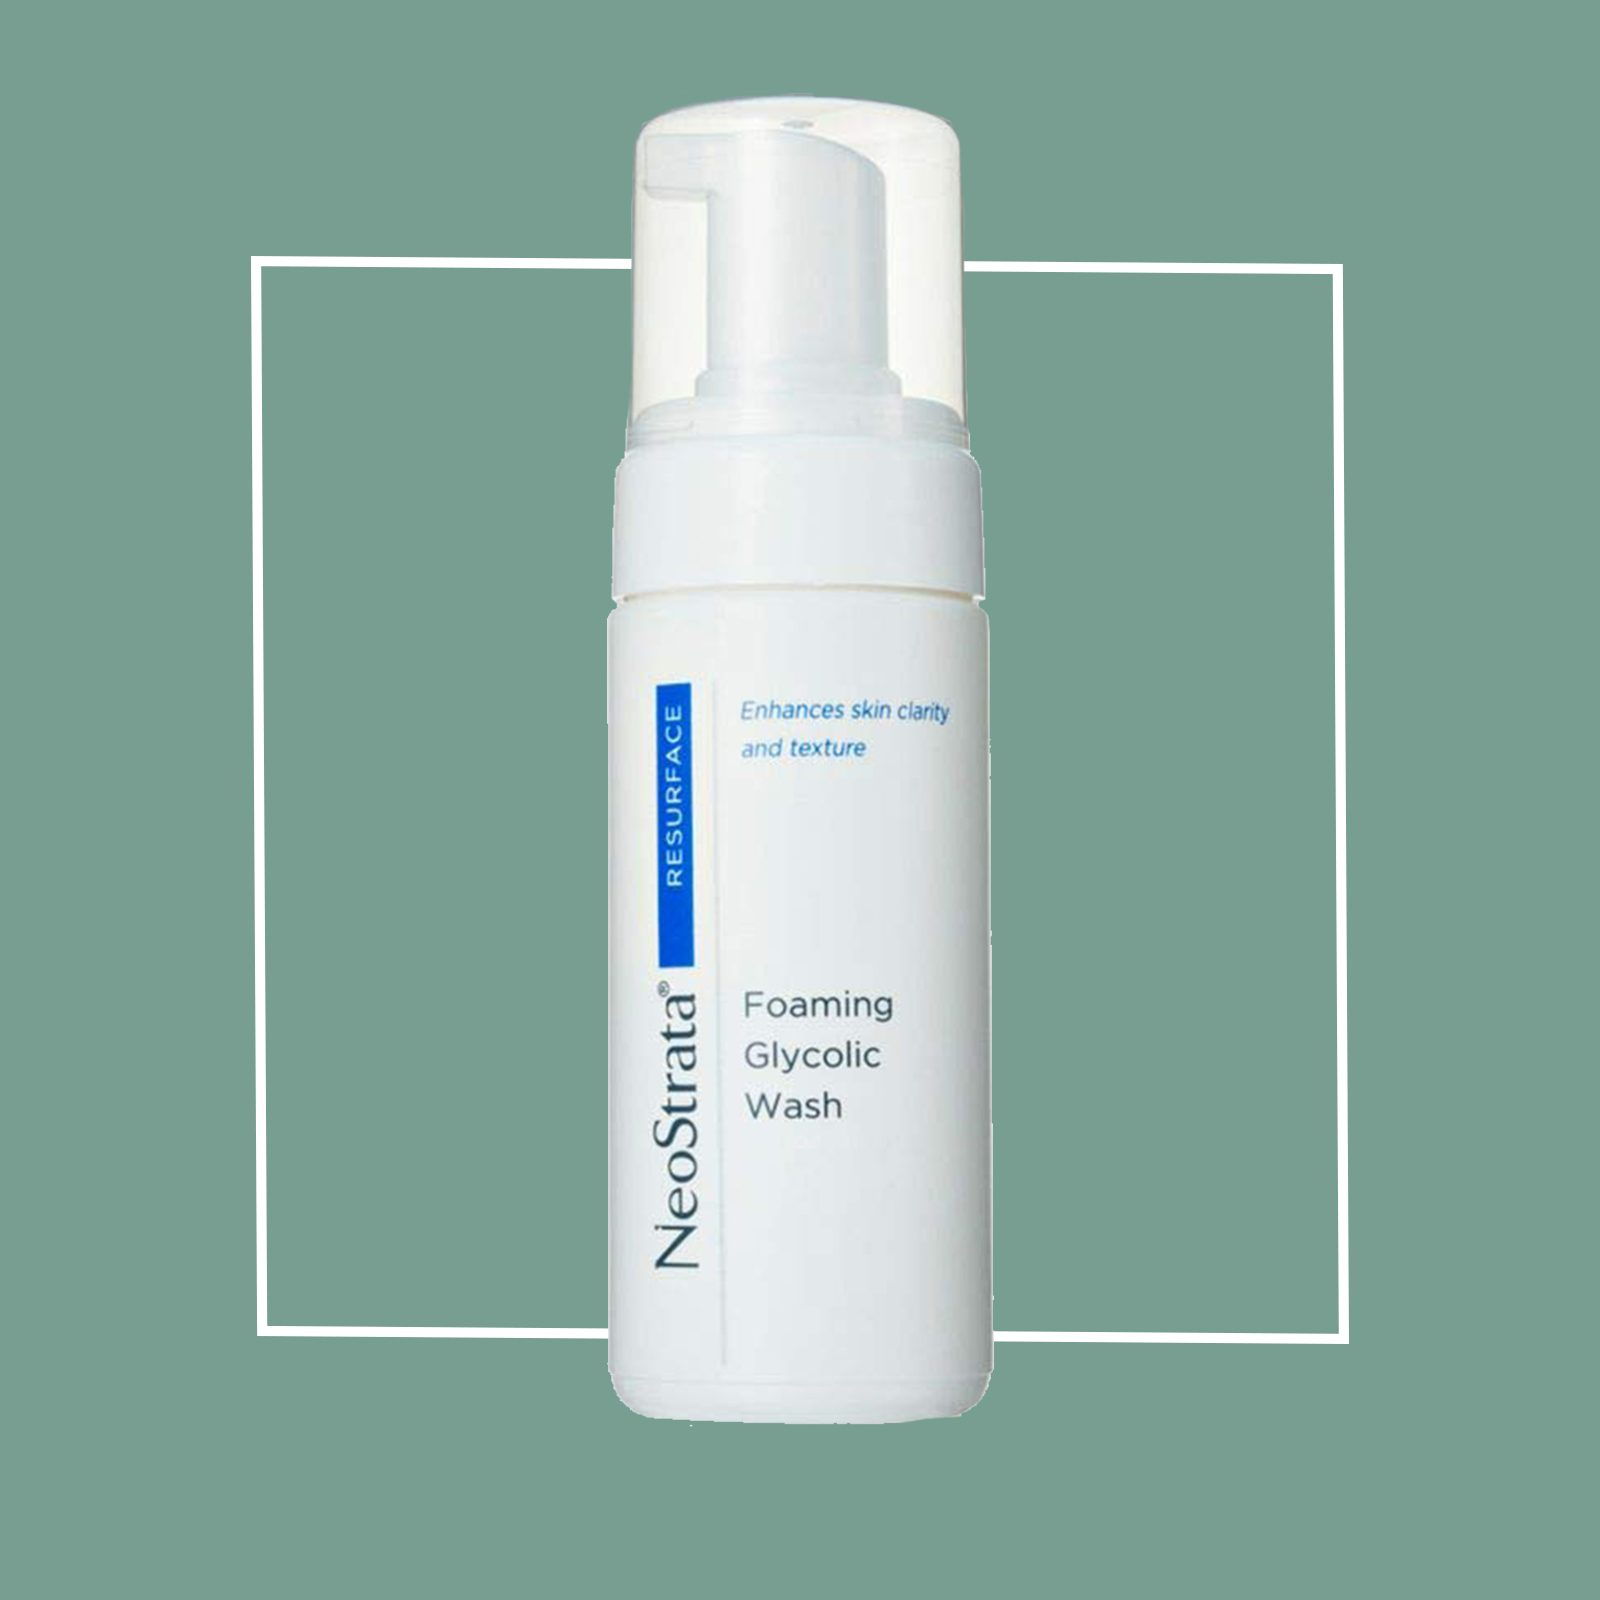 acne face wash for people in their 30s